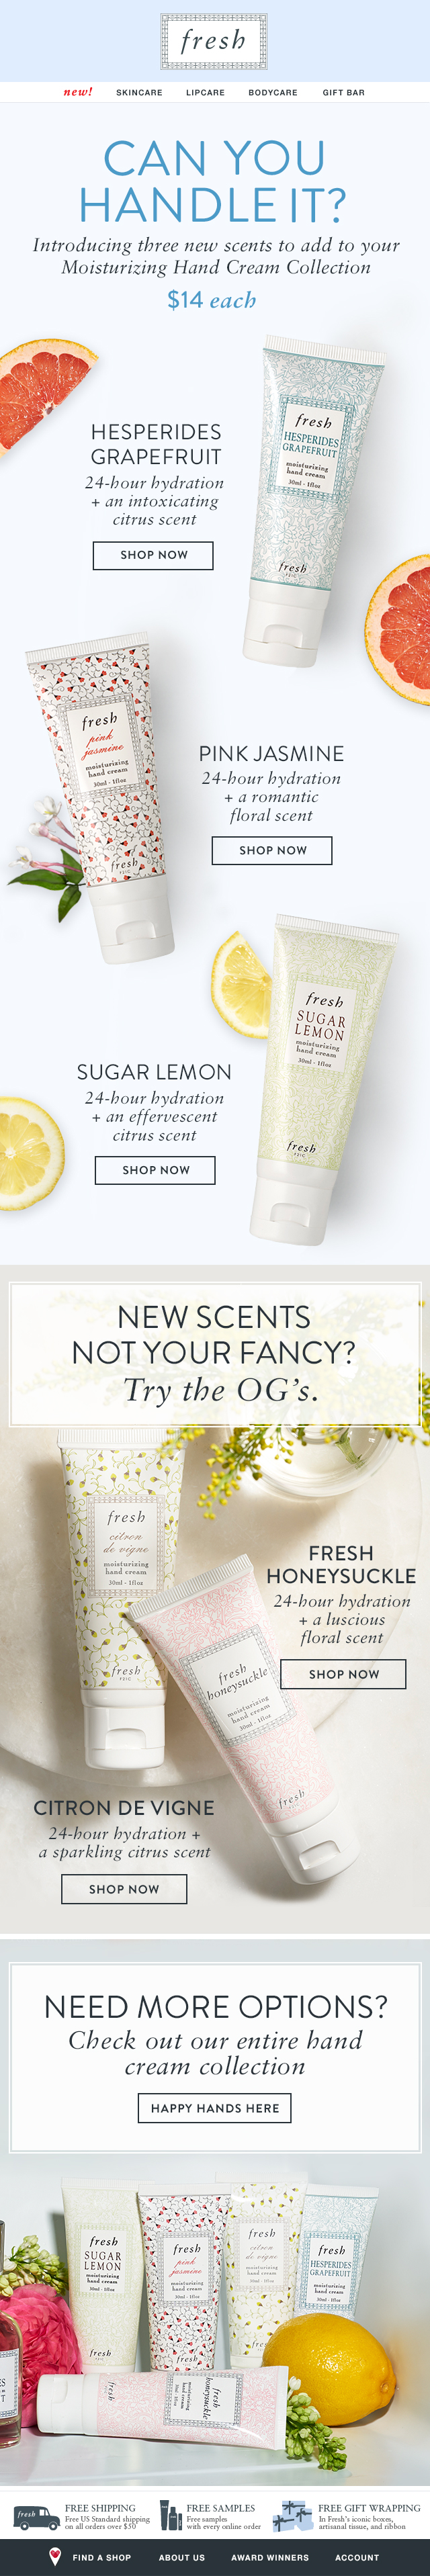 Handcreams_email-01.jpg